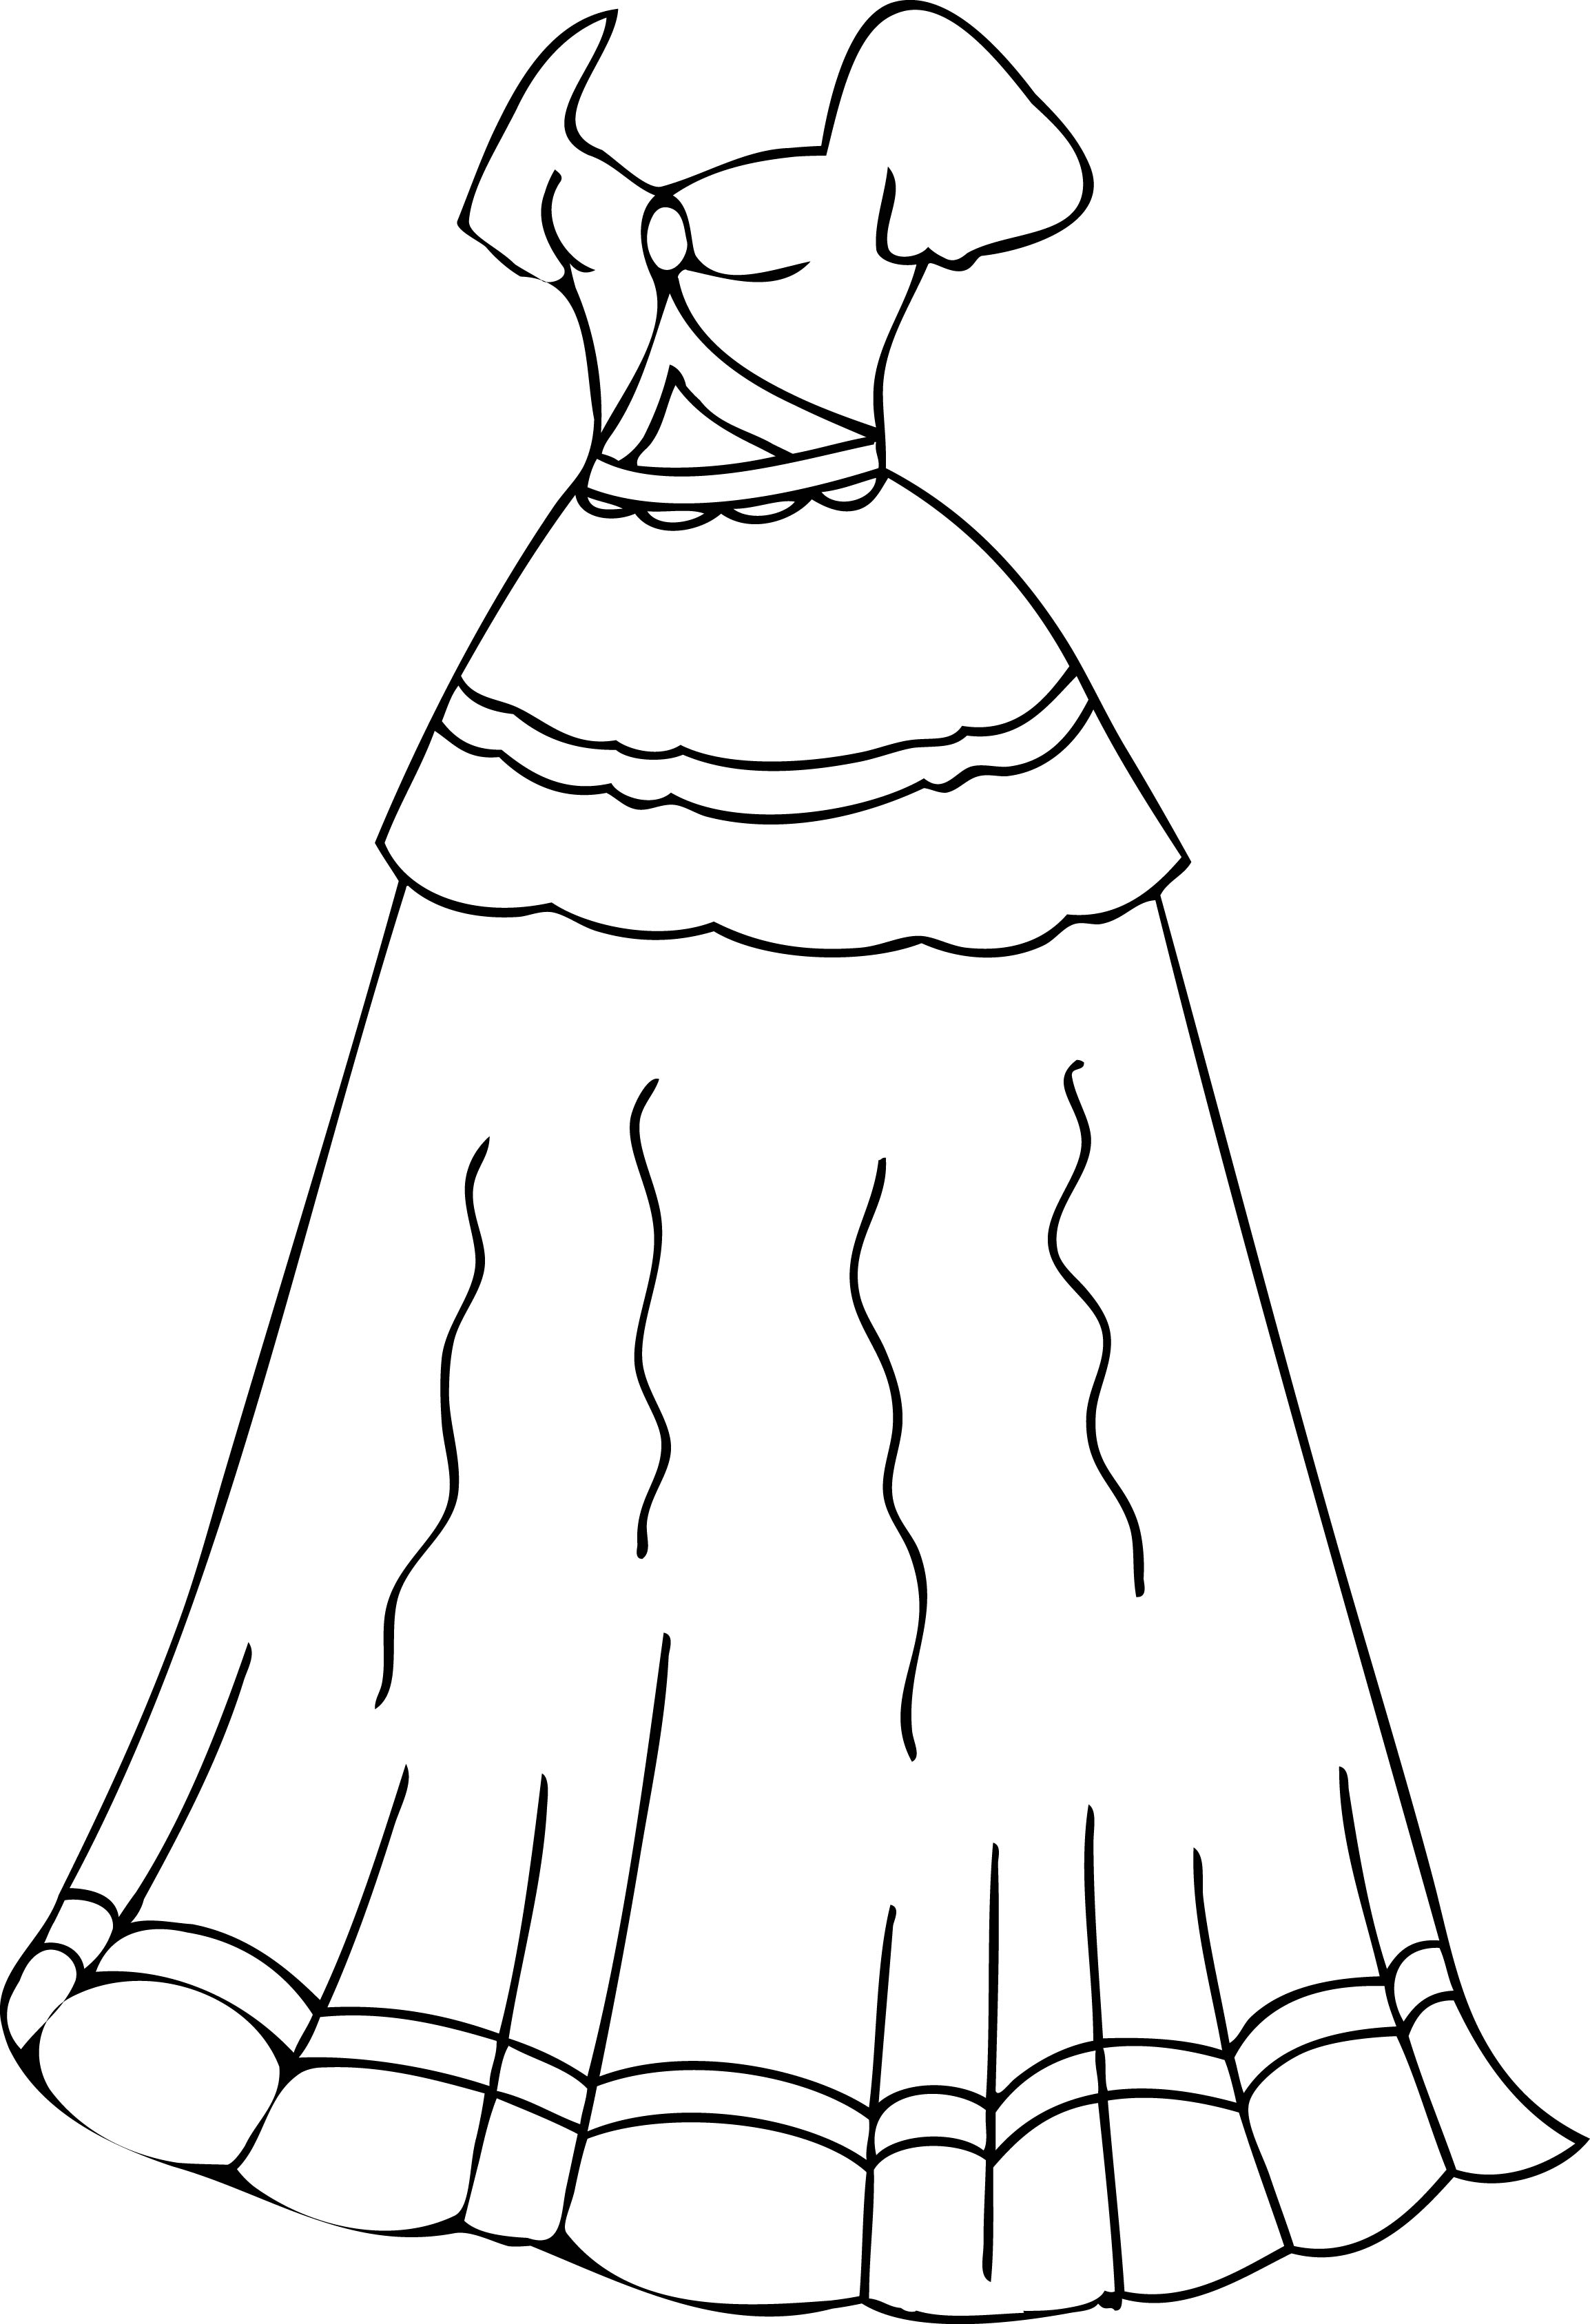 Summer clothes coloring pages - Summer Hat With Ribbons Coloring Page For Girls Printable Free